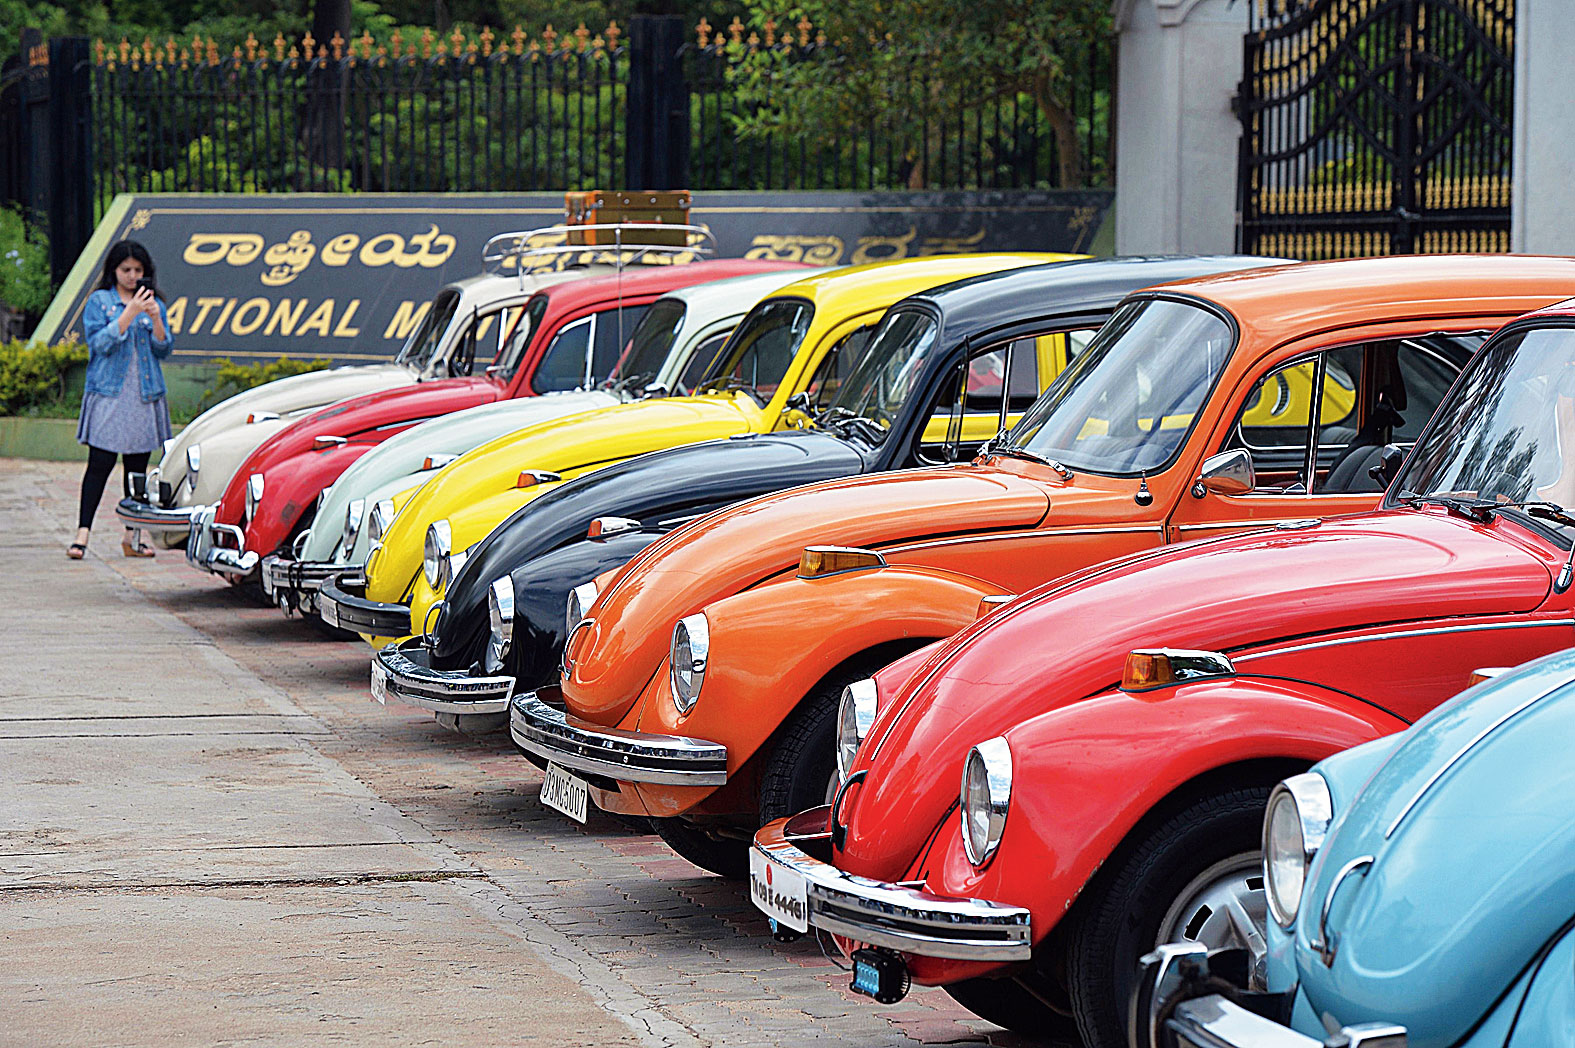 In this file photo taken on June 24, 2018 vintage Volkswagen Beetle cars are parked in a row during a rally held as part of the 23rd anniversary of